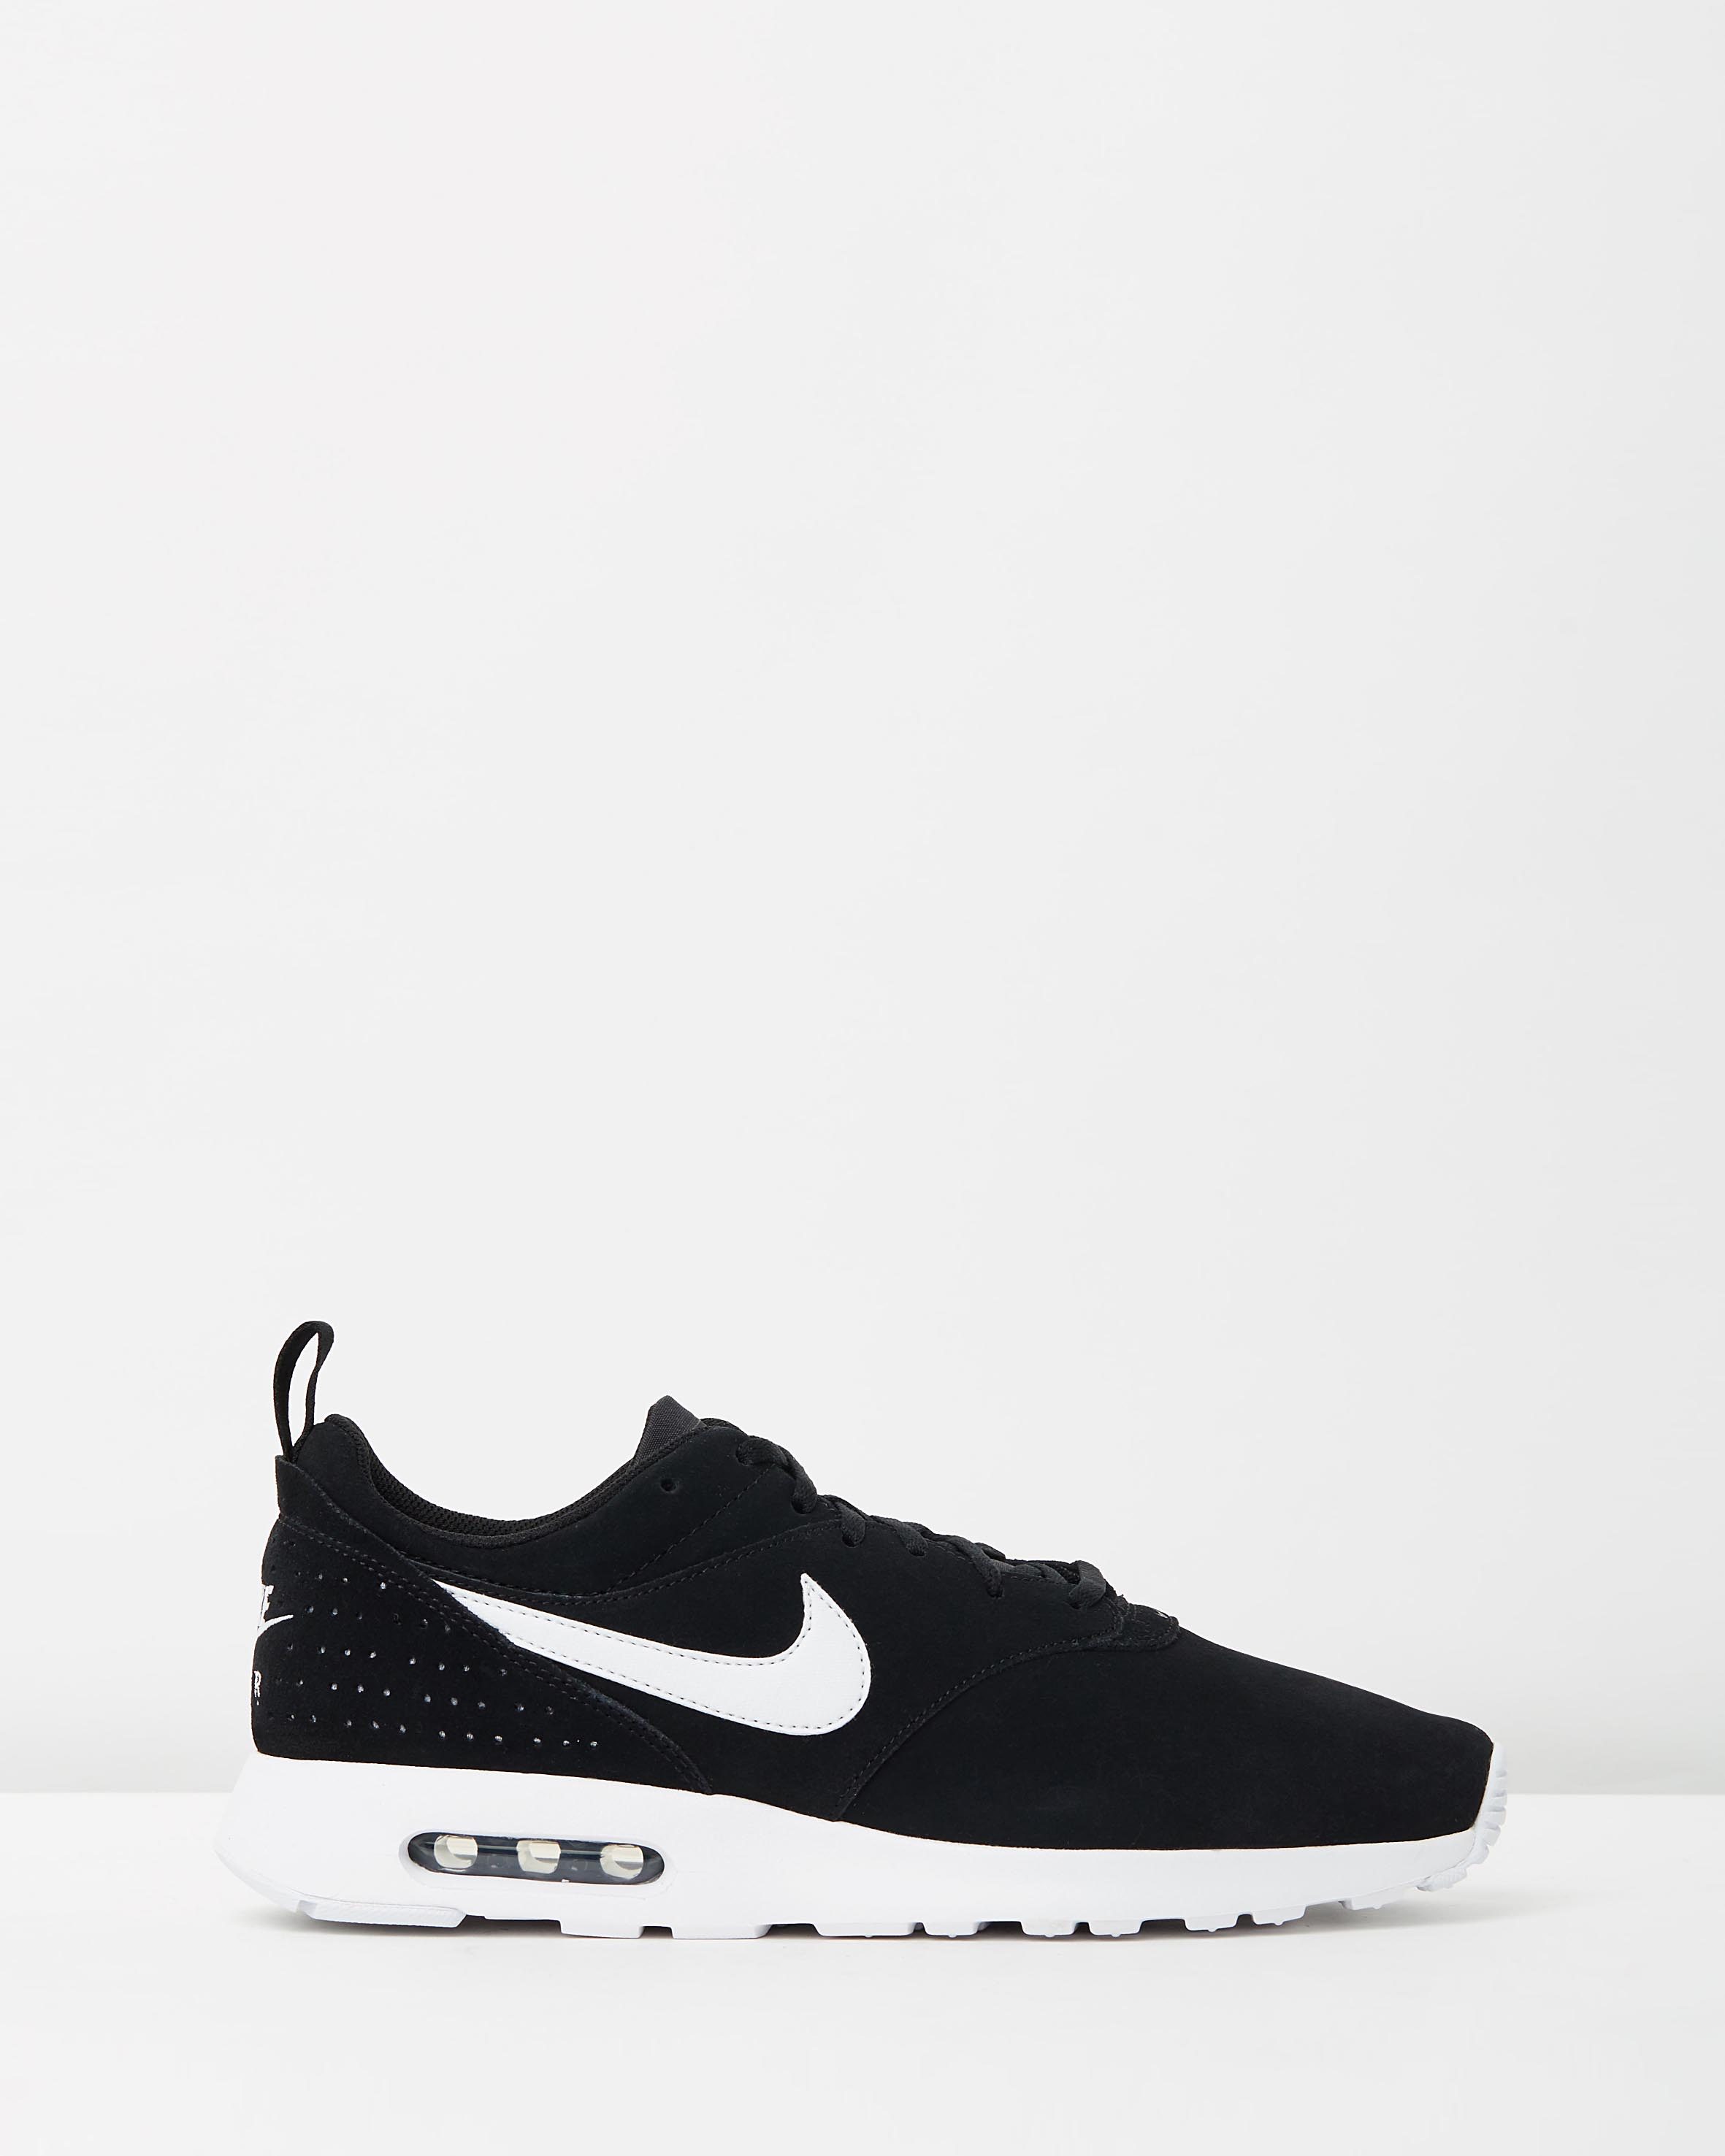 nike men s air max tavas leather black white sneaker. Black Bedroom Furniture Sets. Home Design Ideas